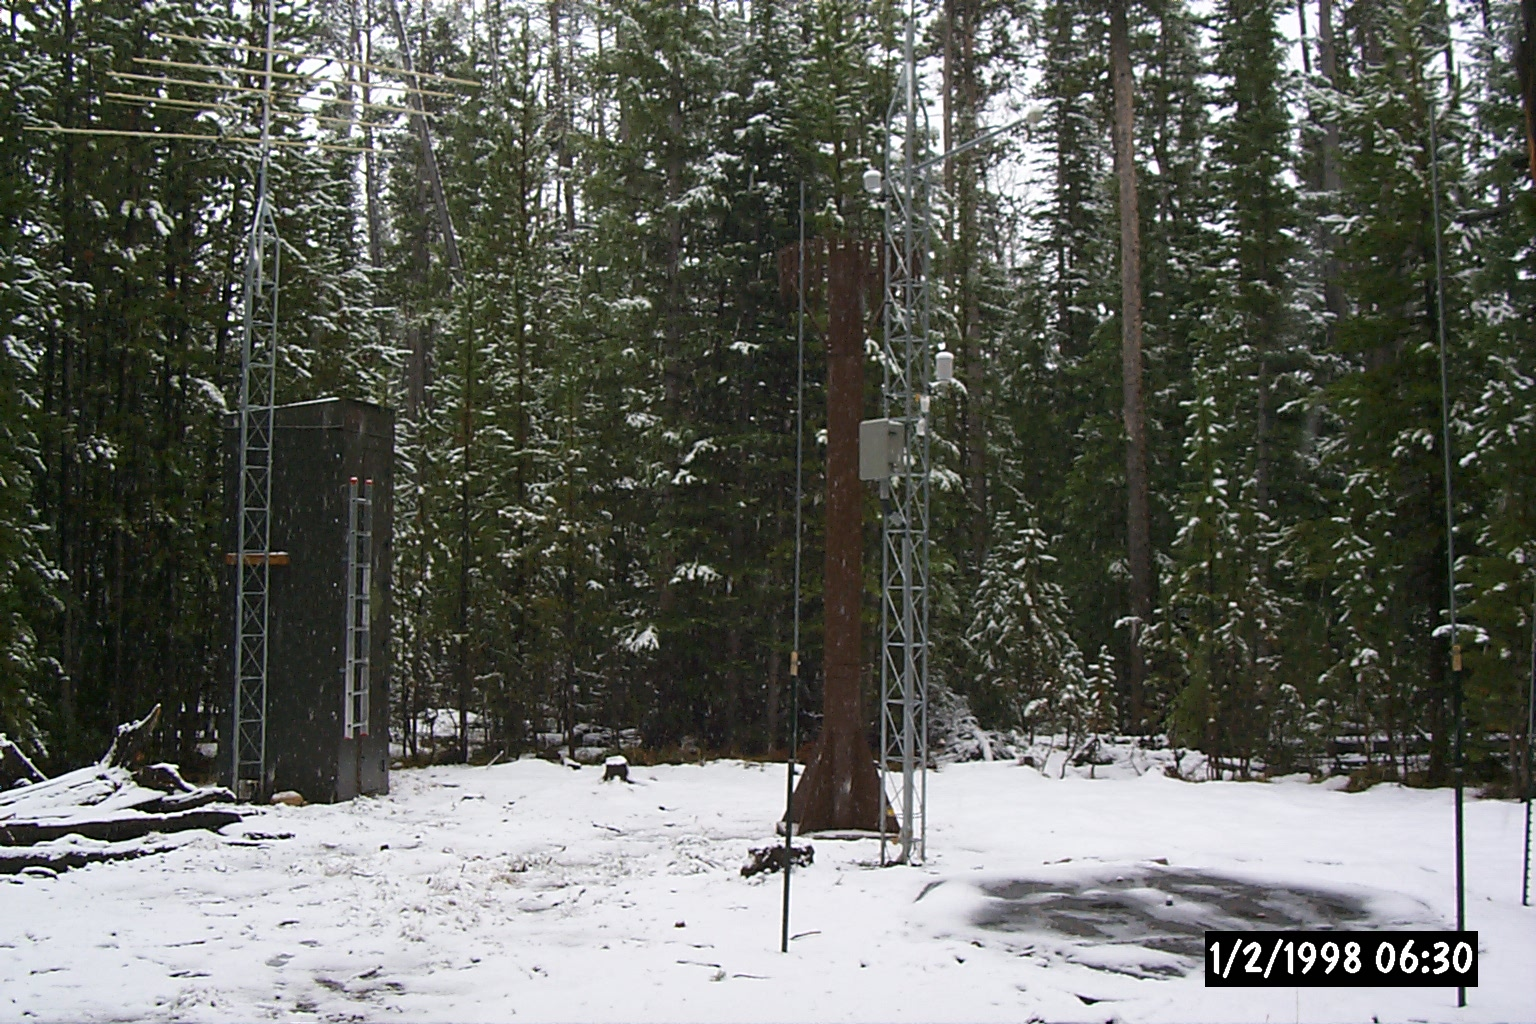 Photograph is of the Cinnabar Park  SNOTEL site.